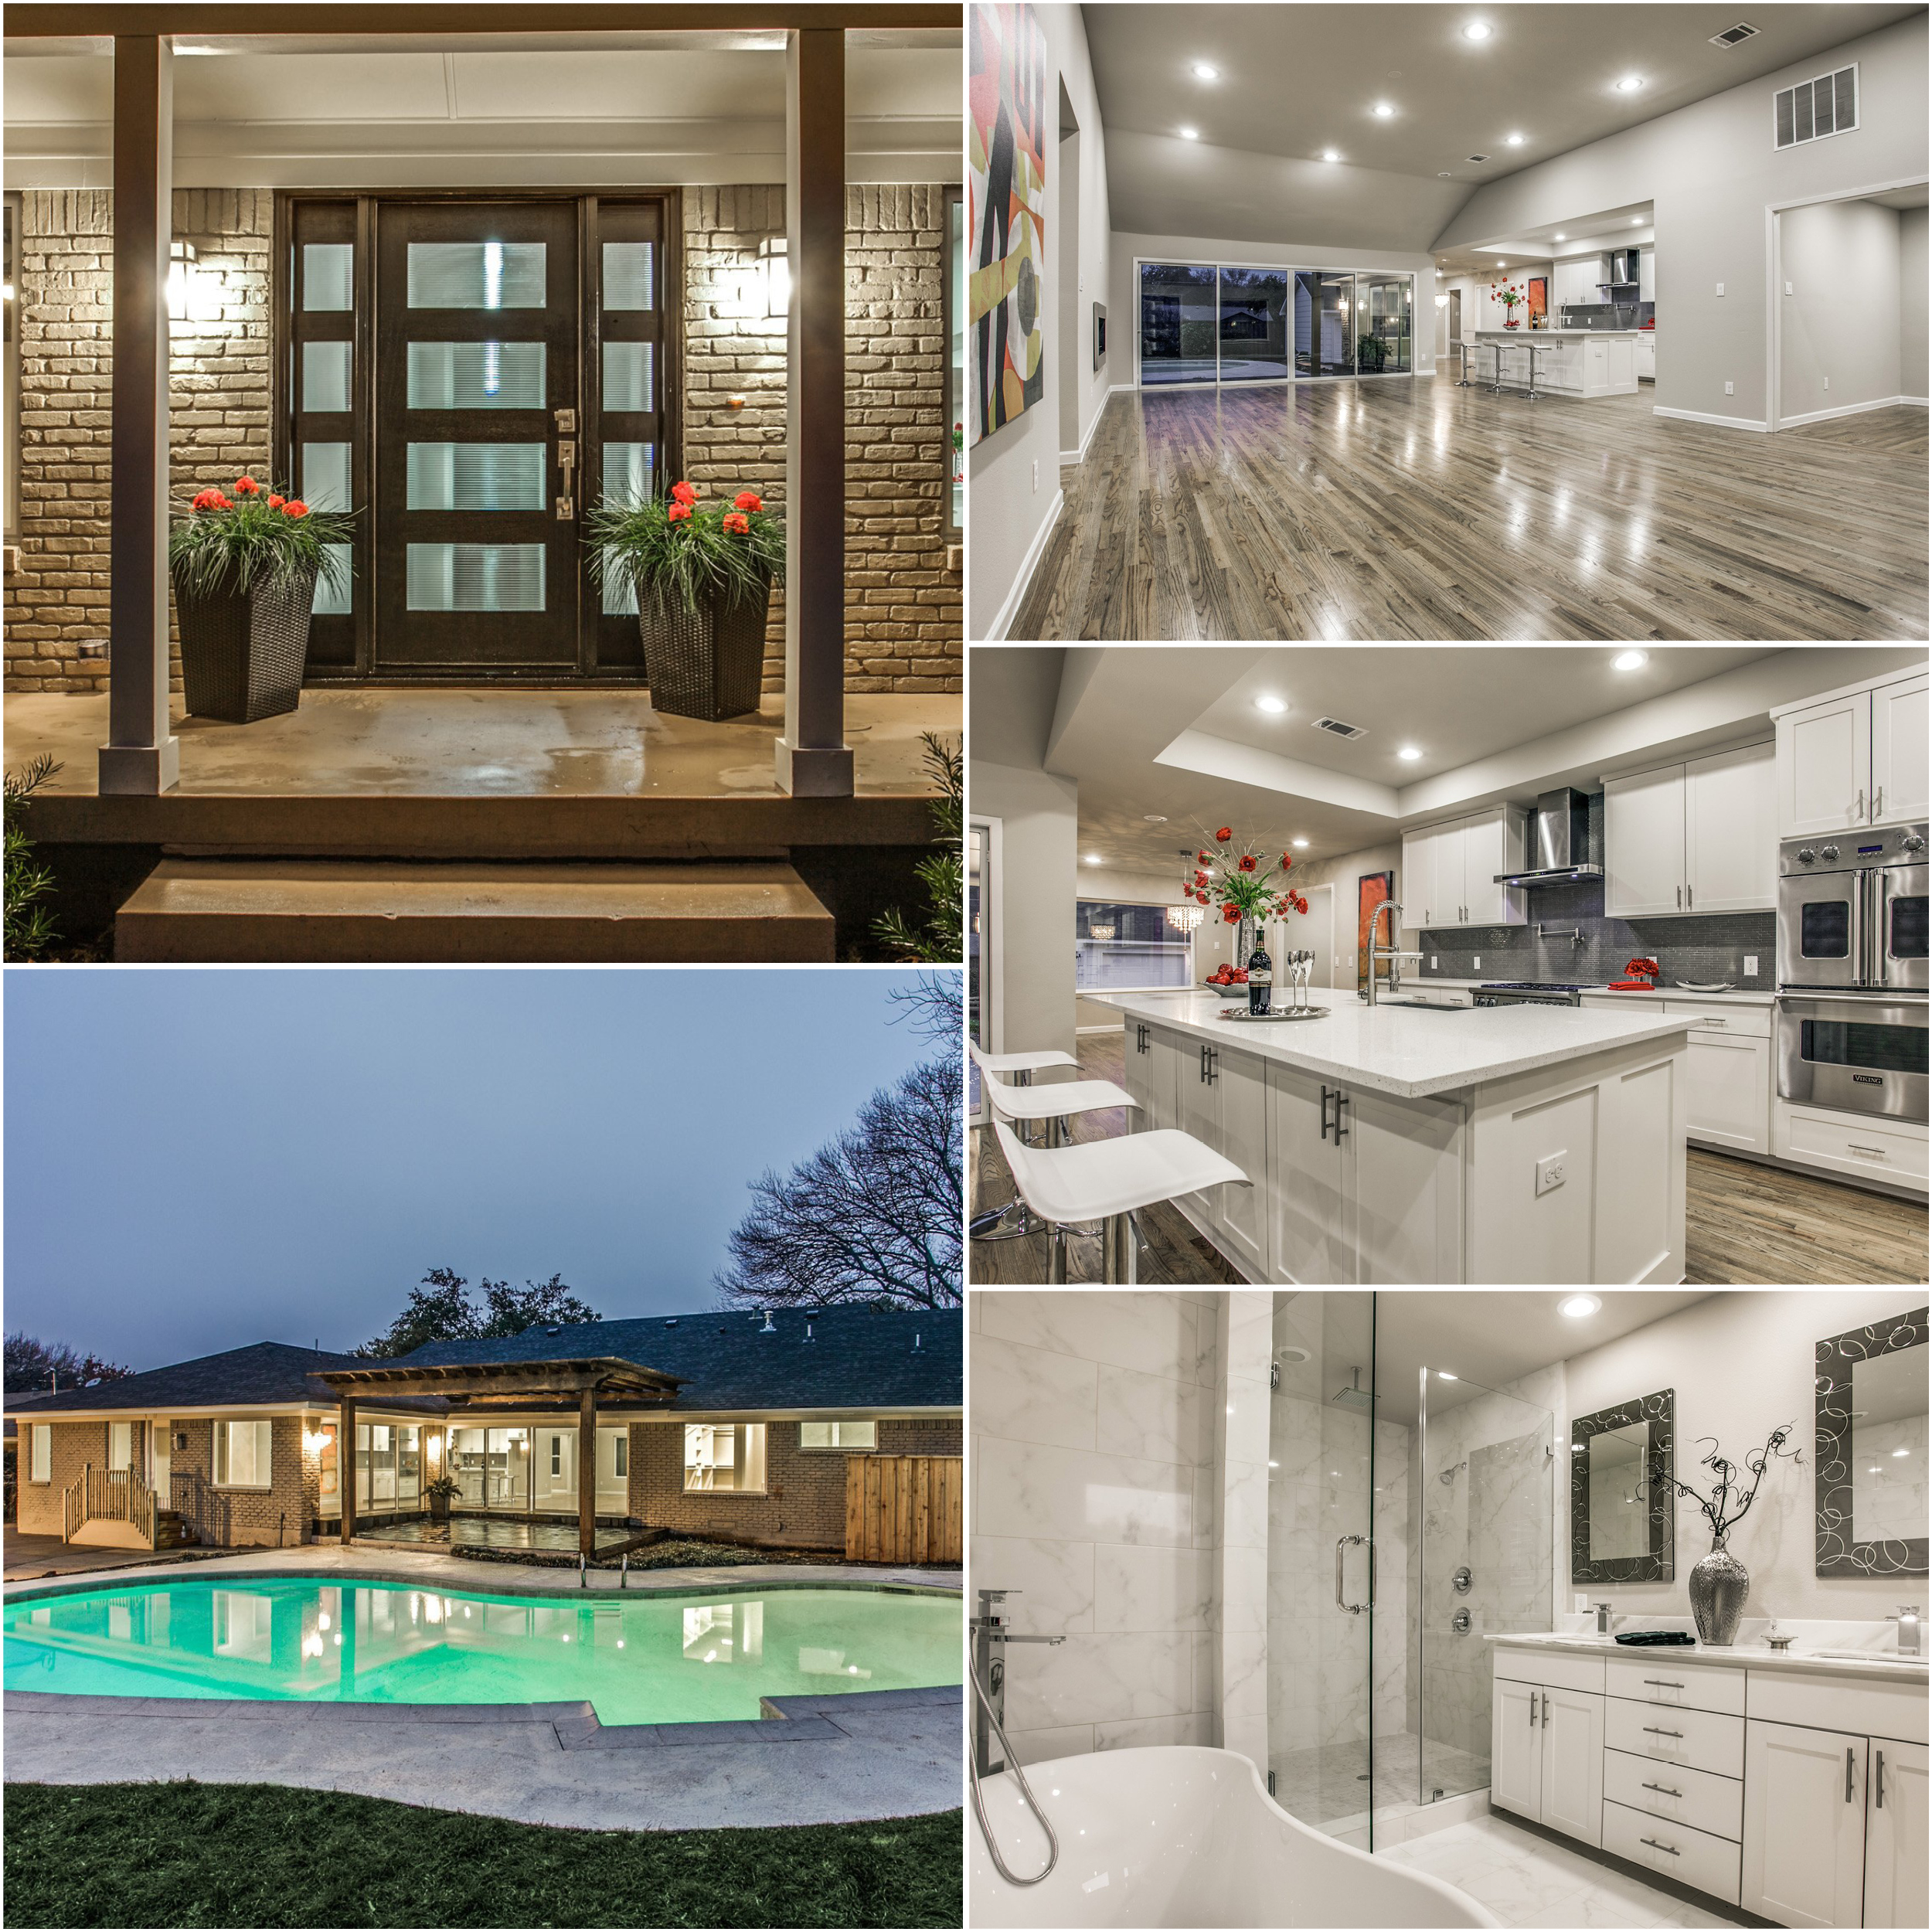 What $750k Gets You in DFW